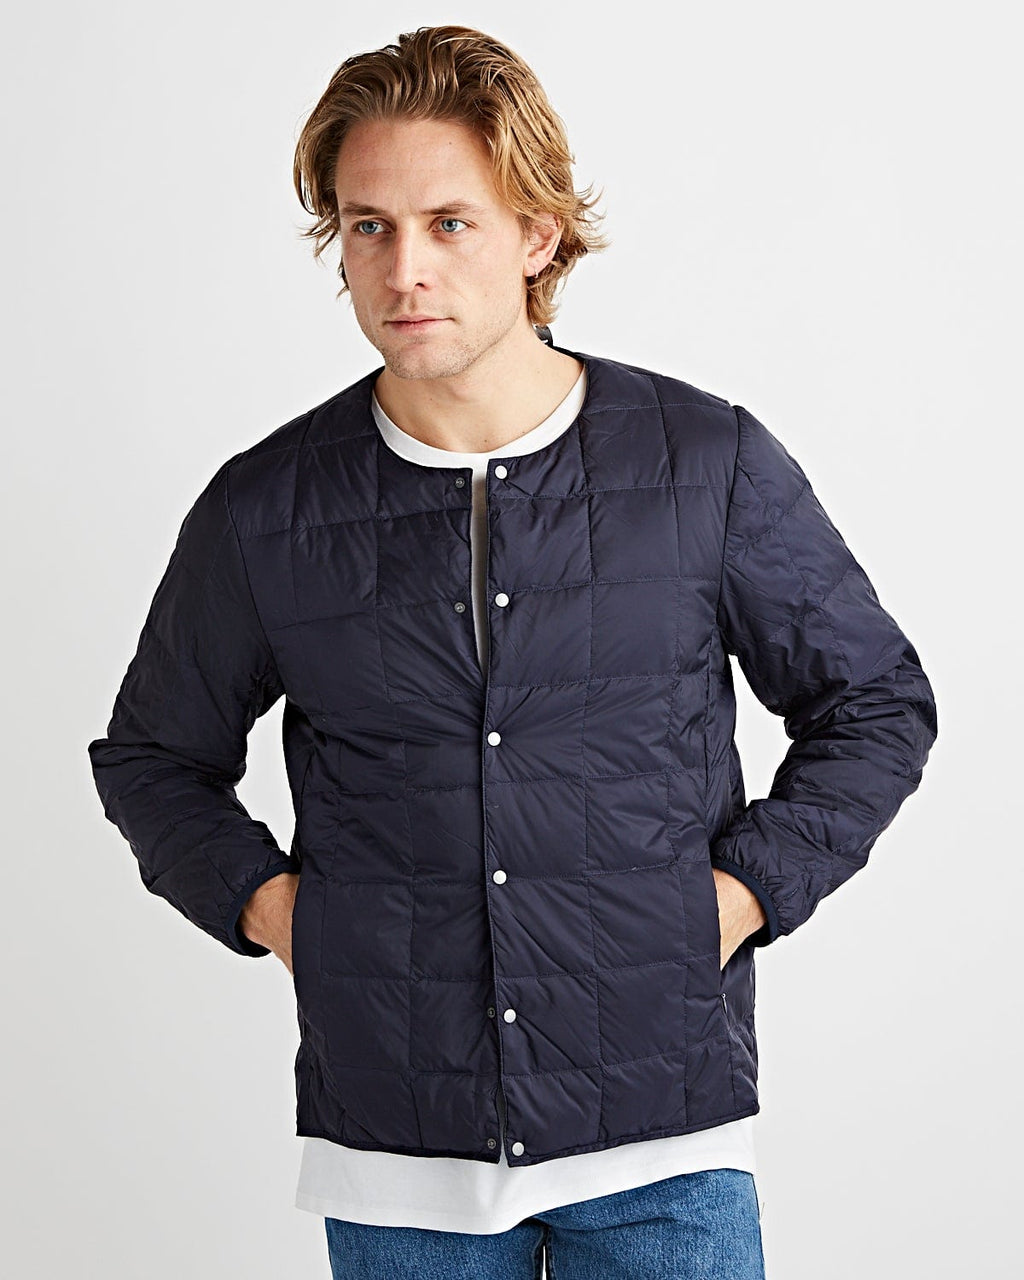 Crew Neck Button Down Jacket Navy